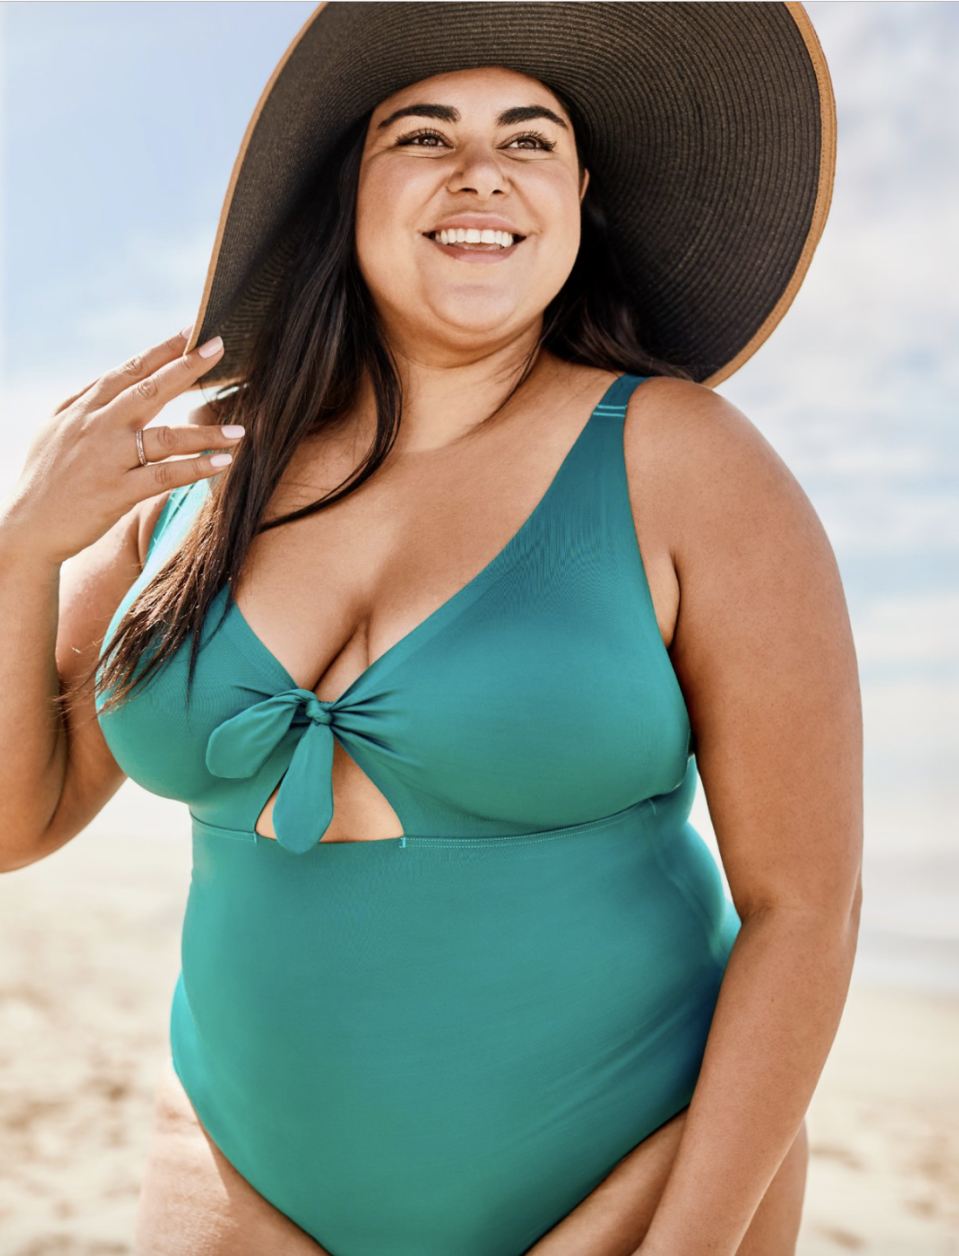 "<p>Nobody knows how to create a well-fitting swimsuit quite like a lingerie brand, and this new swimwear line by Knix proves it, says Nazzaro. The suits are designed to lift and support to help you feel comfortable and confident on the beach. Suits come in sizes S-XXL (covering sizes 2-20 and up to a 40F).</p><p><a class=""link rapid-noclick-resp"" href=""https://go.redirectingat.com?id=74968X1596630&url=https%3A%2F%2Fknix.com%2Fcollections%2Fswim&sref=https%3A%2F%2Fwww.oprahmag.com%2Fstyle%2Fg27391962%2Fbest-swimwear-brands%2F"" rel=""nofollow noopener"" target=""_blank"" data-ylk=""slk:SHOP NOW"">SHOP NOW</a></p>"